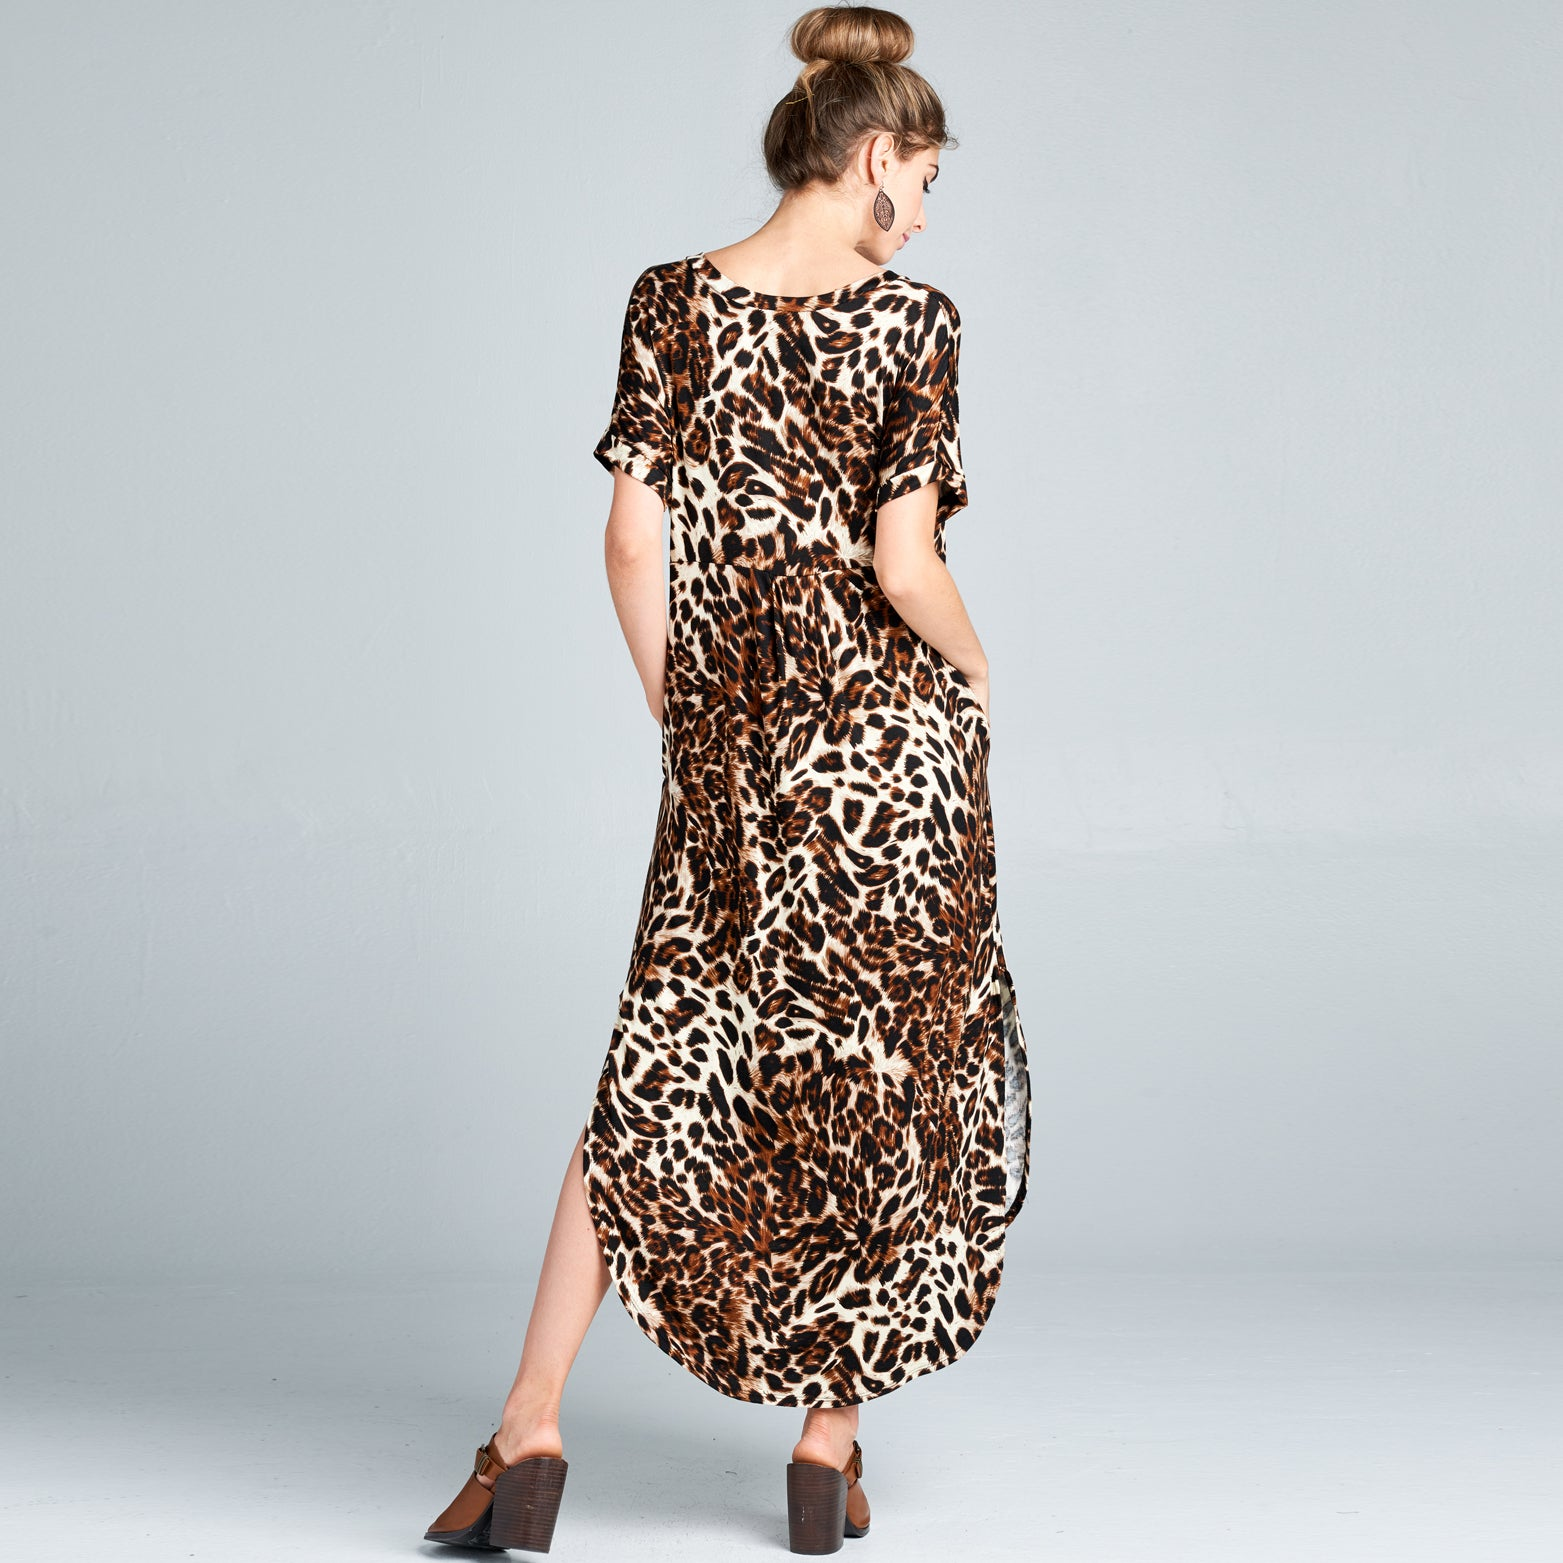 RL Leopard Maxi Dress